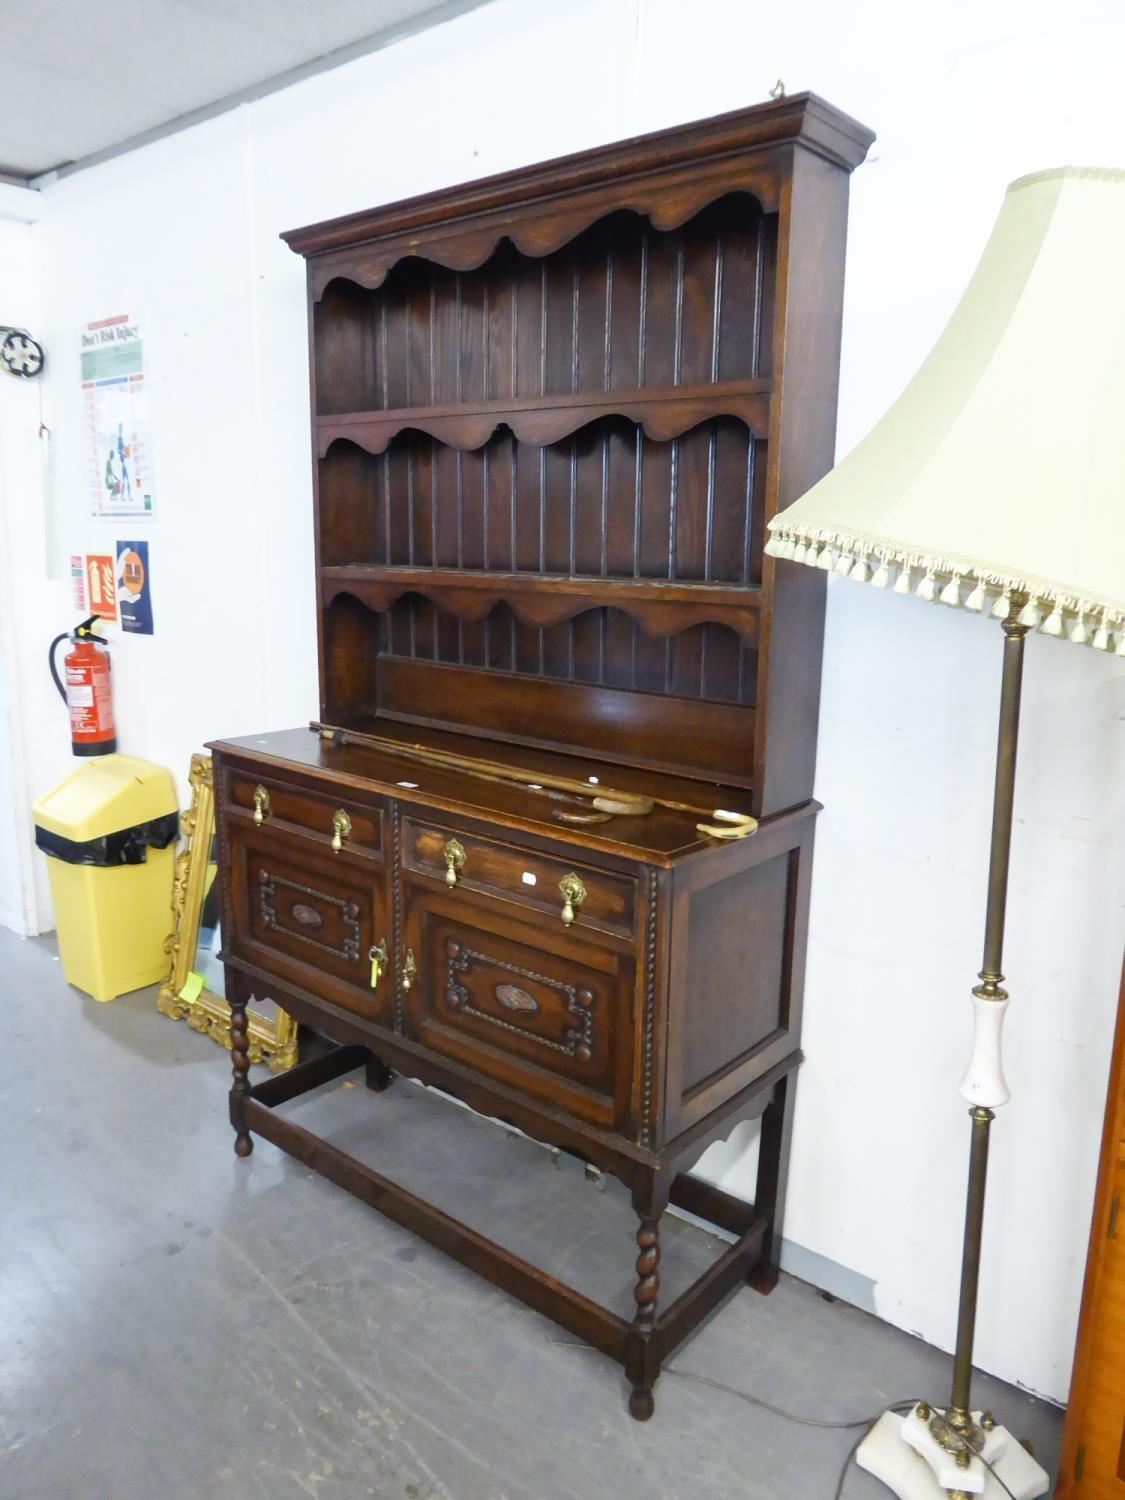 Lot 38 - AN EARLY TWENTIETH CENTURY OAK DRESSER, having two cupboard doors and 2 drawers tongue and groove